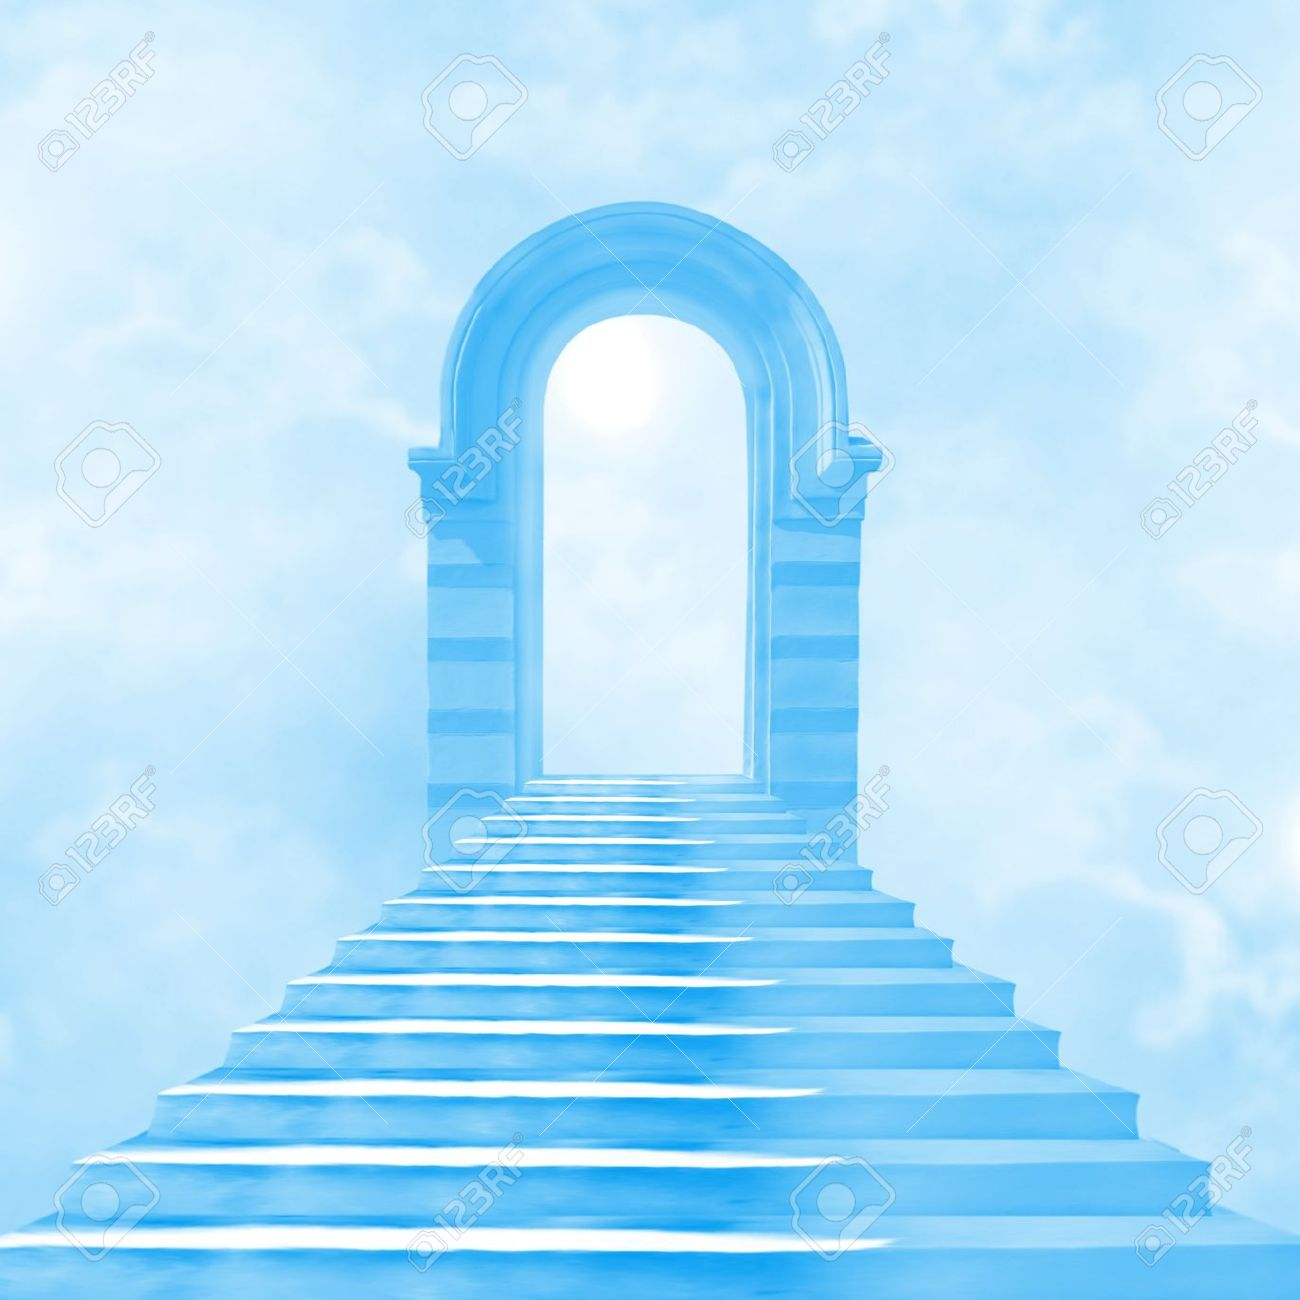 Heaven clipart staircase Heaven Pinterest Stairway to Heaven